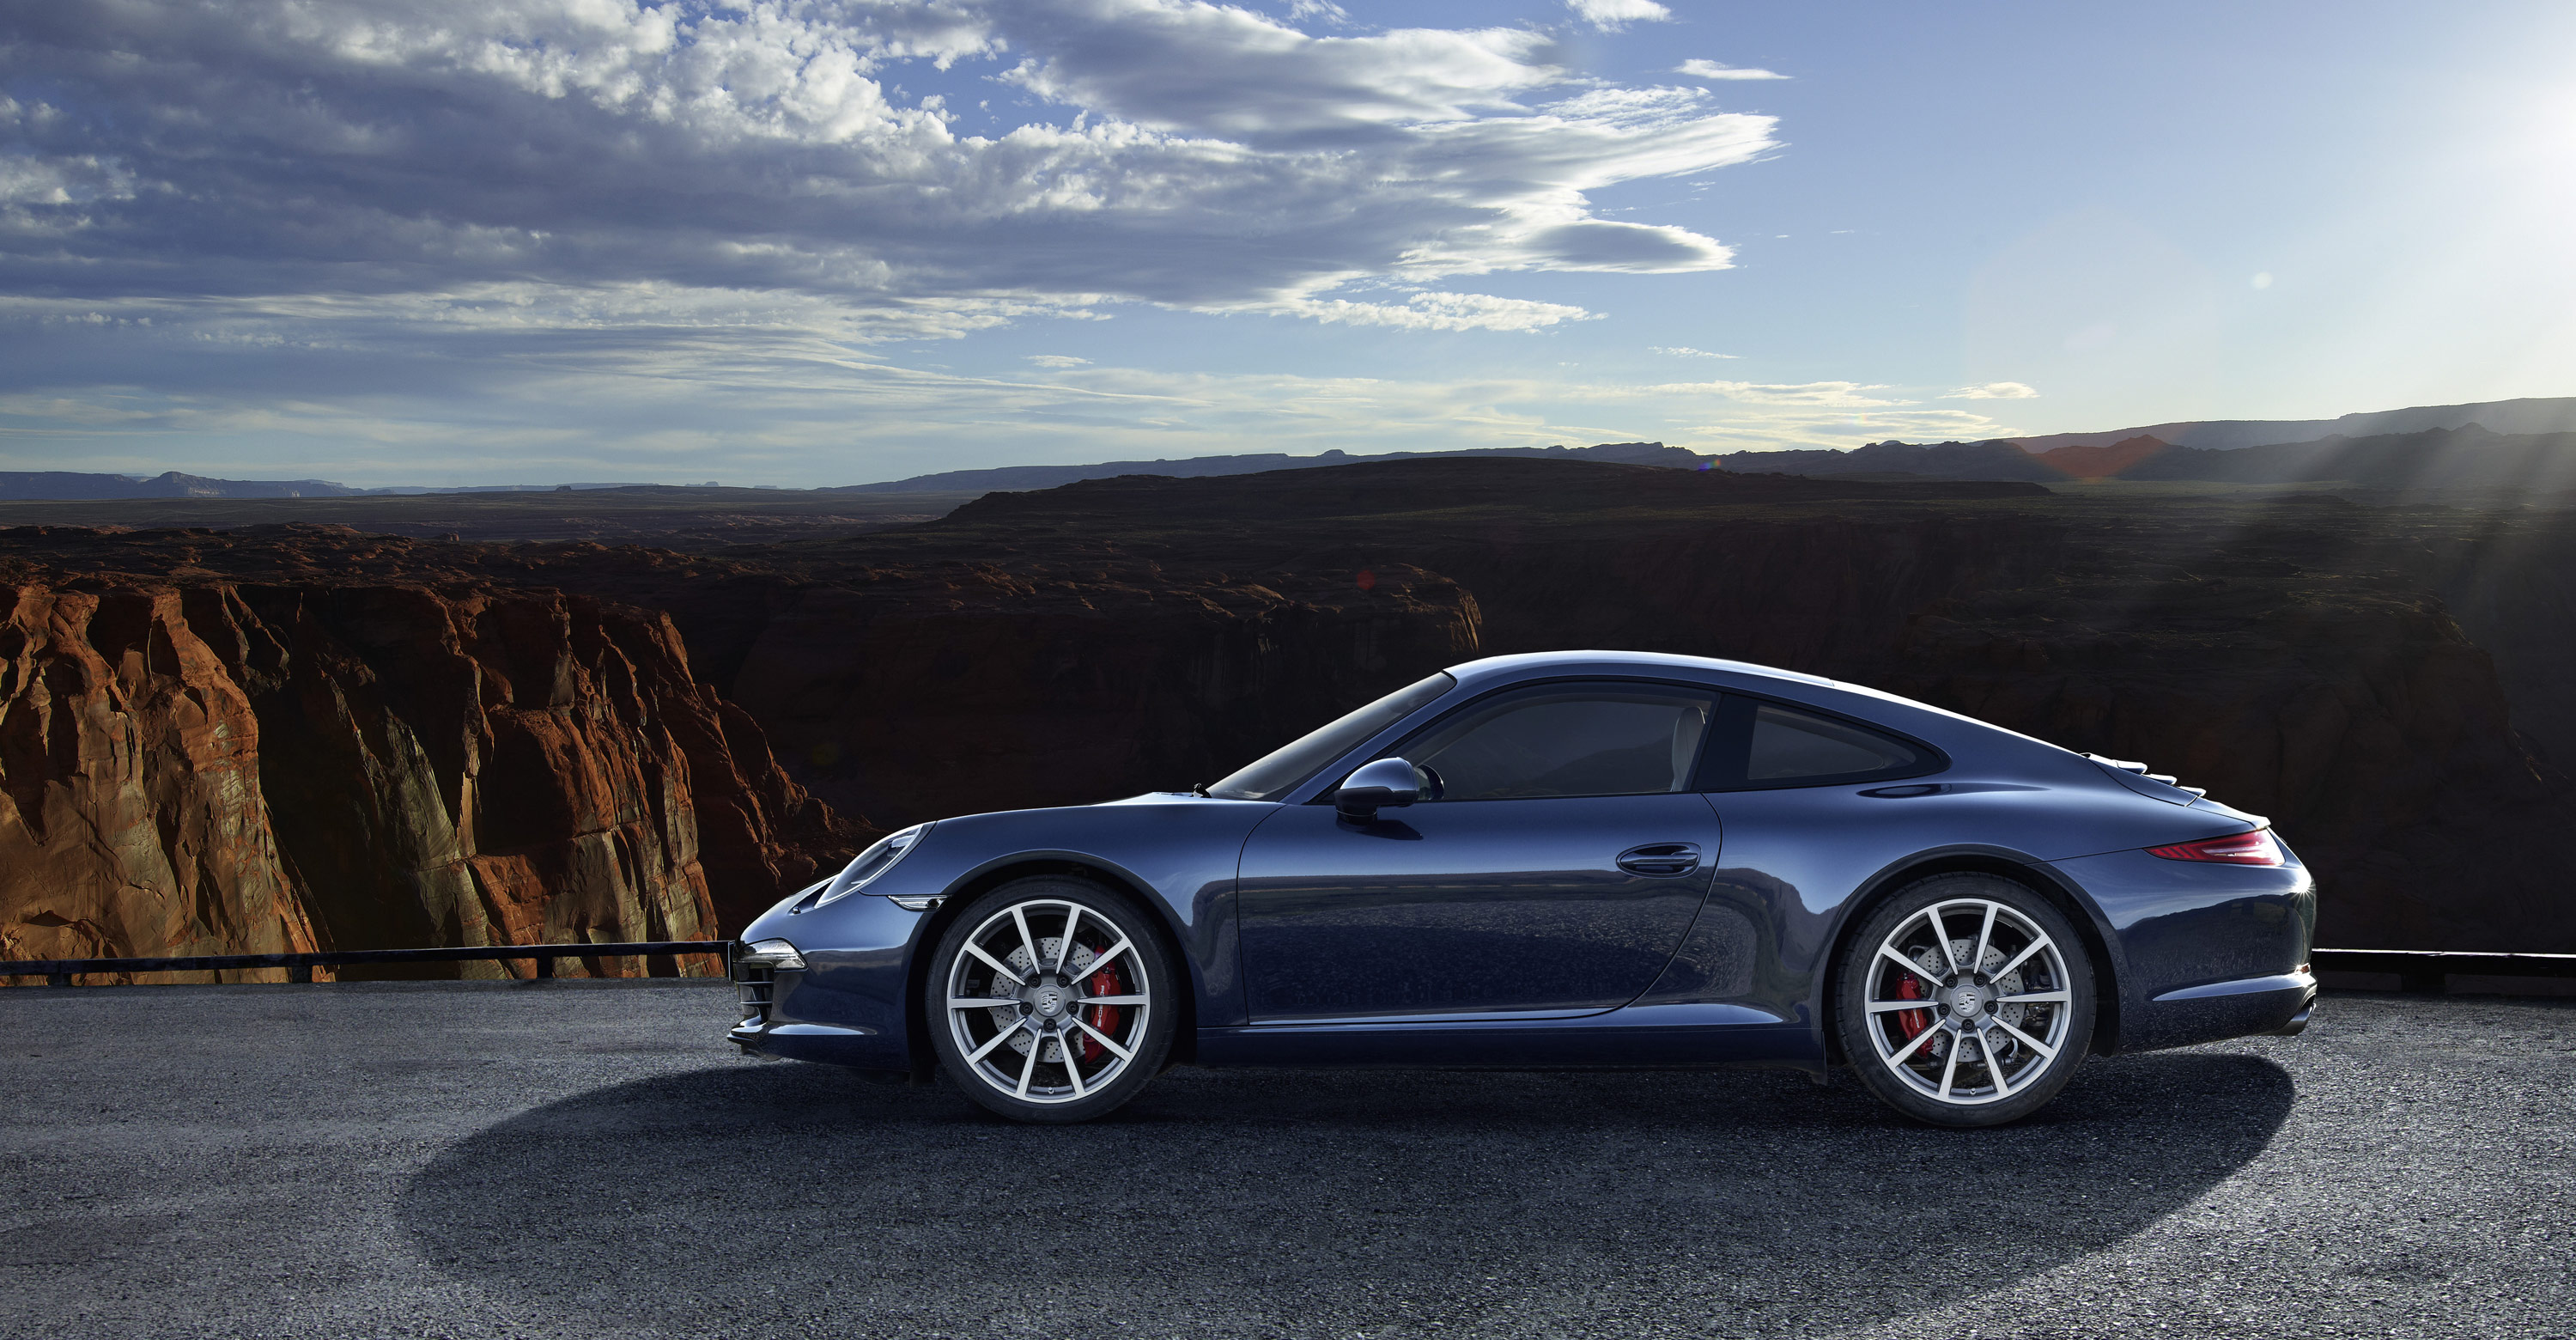 2012 new Porsche 911 Carrera S